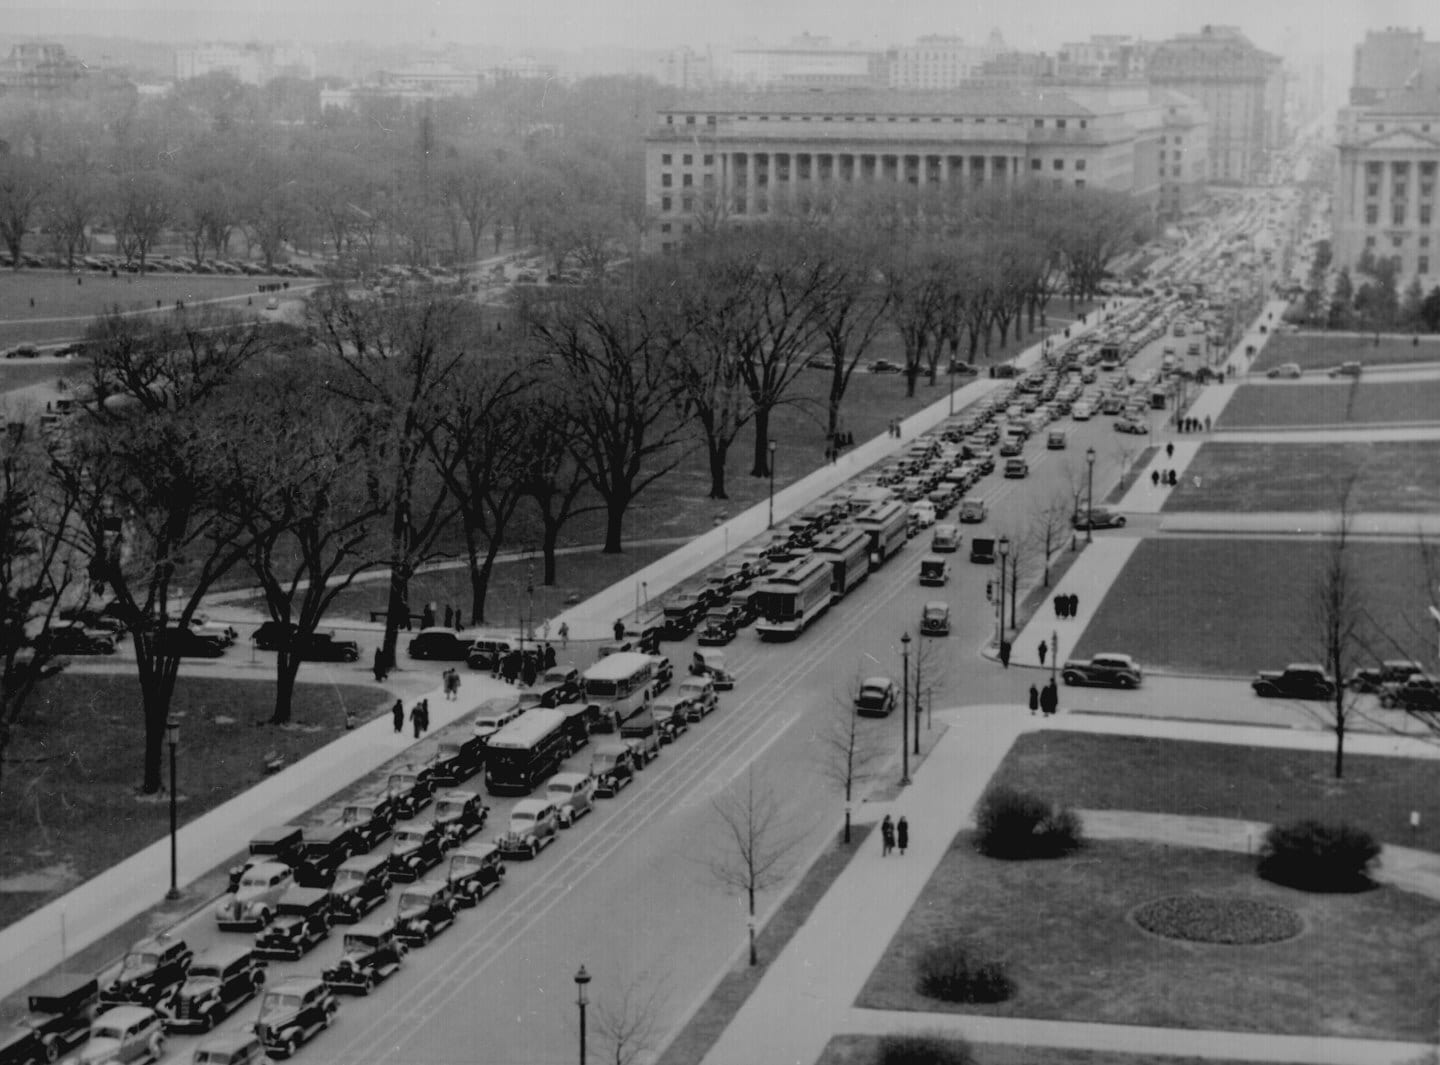 Aerial view of a traffic jam, 14th Street and the Mall, Washington, D.C., Apr. 1937. 30-N-37-1360A.  (National Archives)